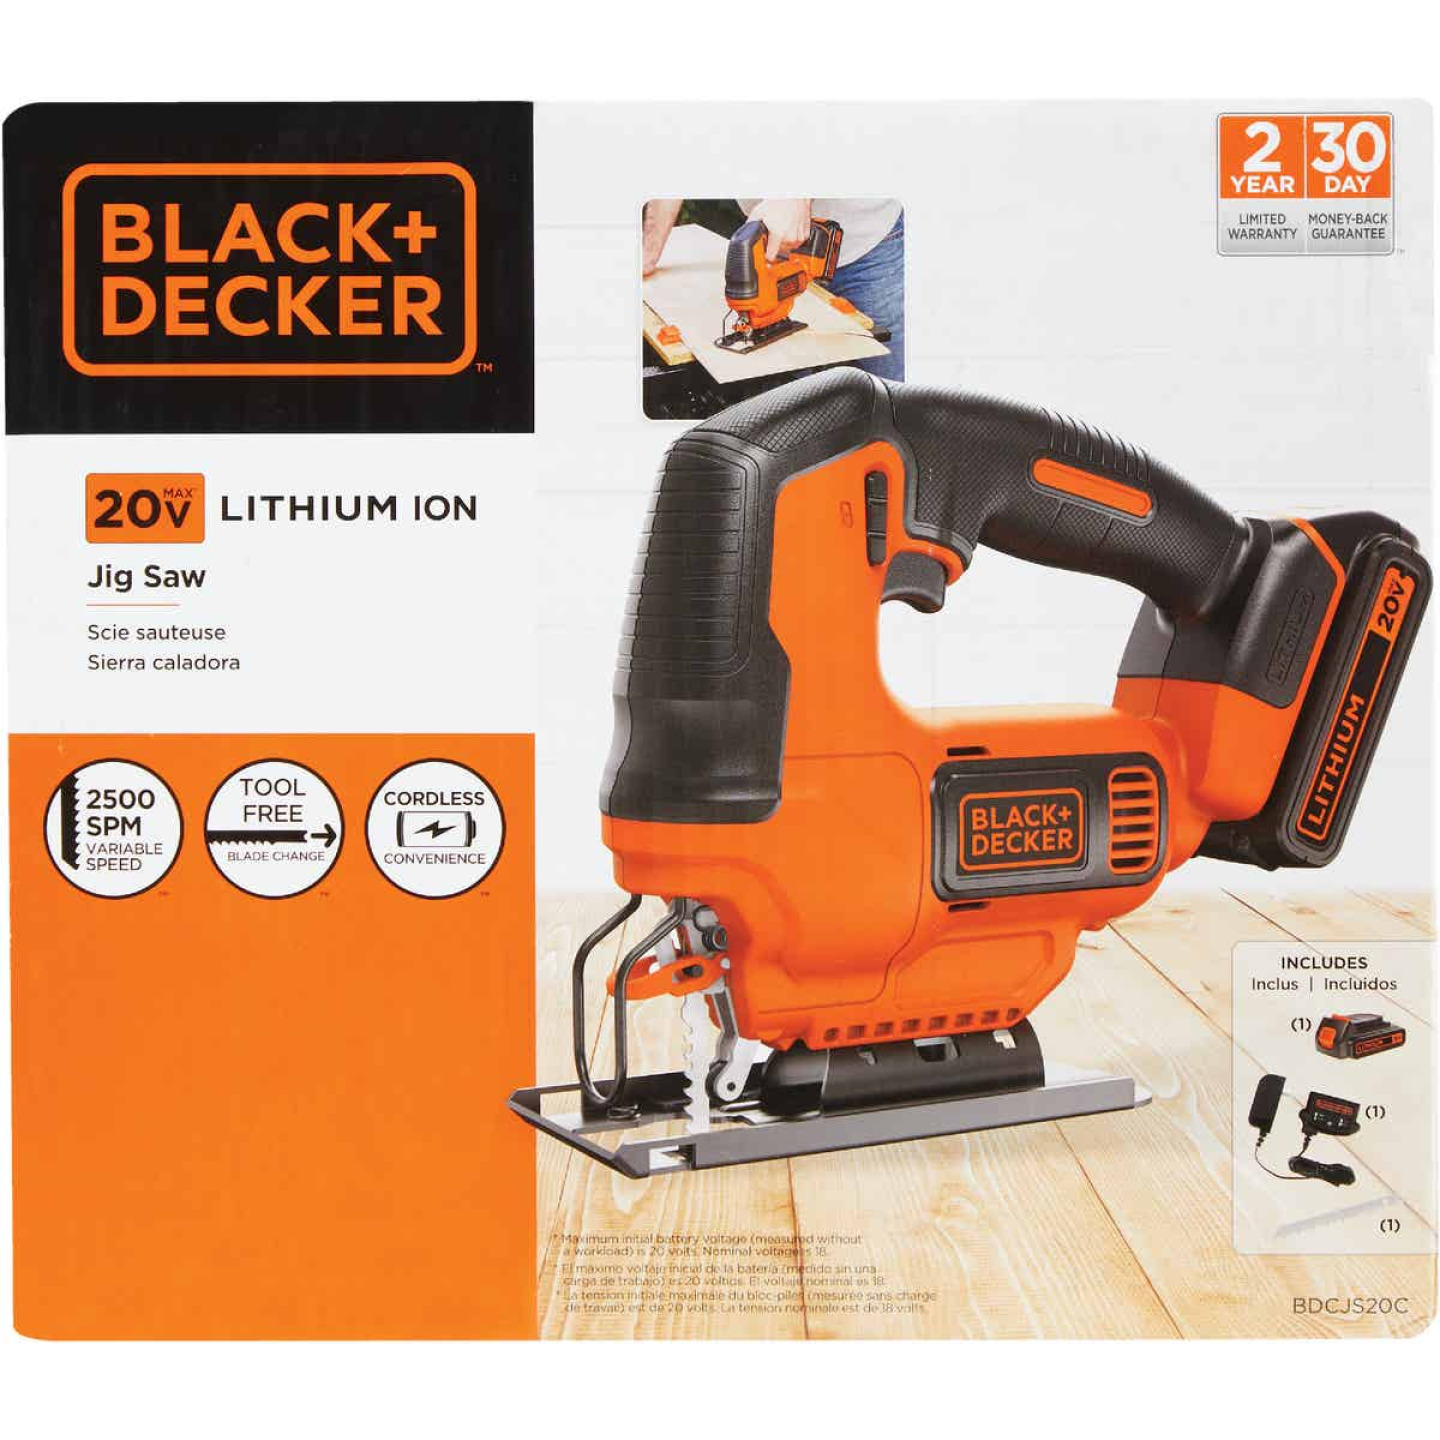 Black & Decker 20 Volt MAX Lithium-Ion 1.5 Ah Cordless Jig Saw Kit Image 4